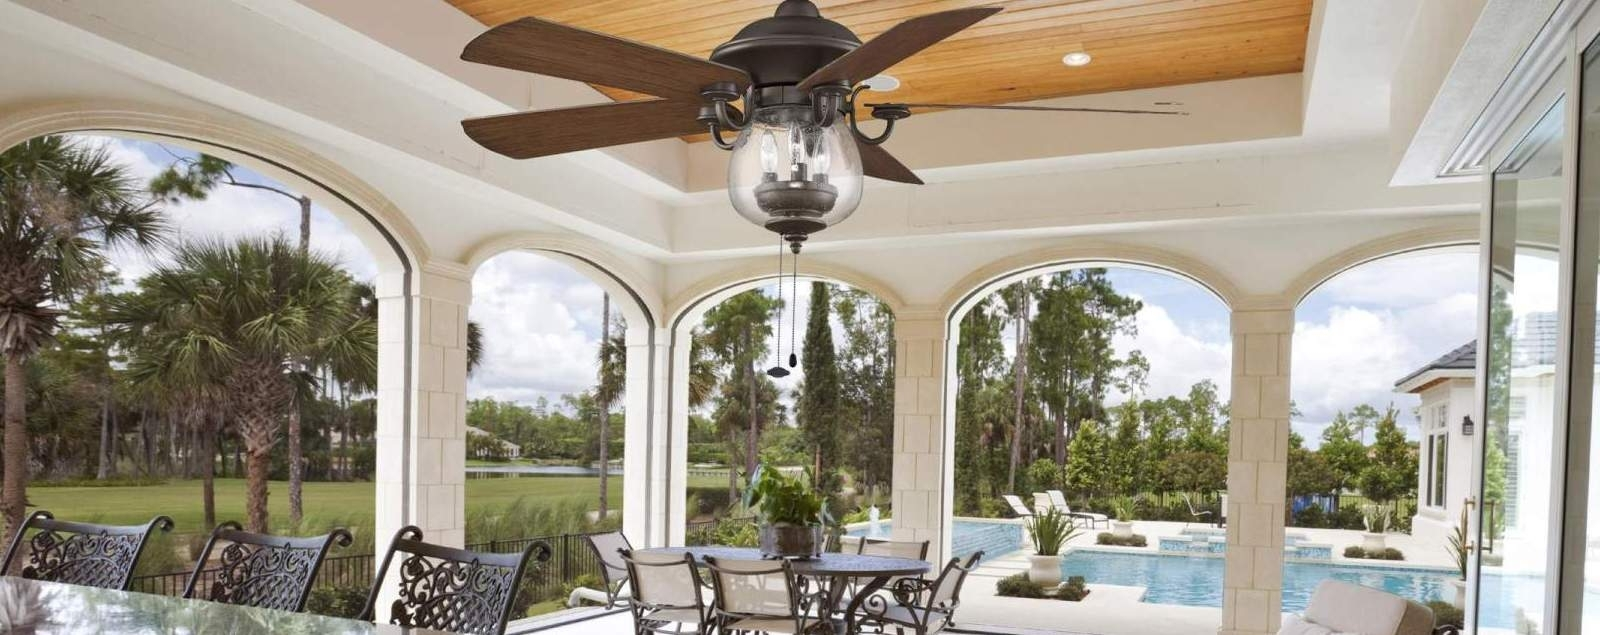 Outdoor Ceiling Fans For Wet Locations In Most Current Outdoor Ceiling Fans – Shop Wet, Dry, And Damp Rated Outdoor Fans (View 9 of 20)